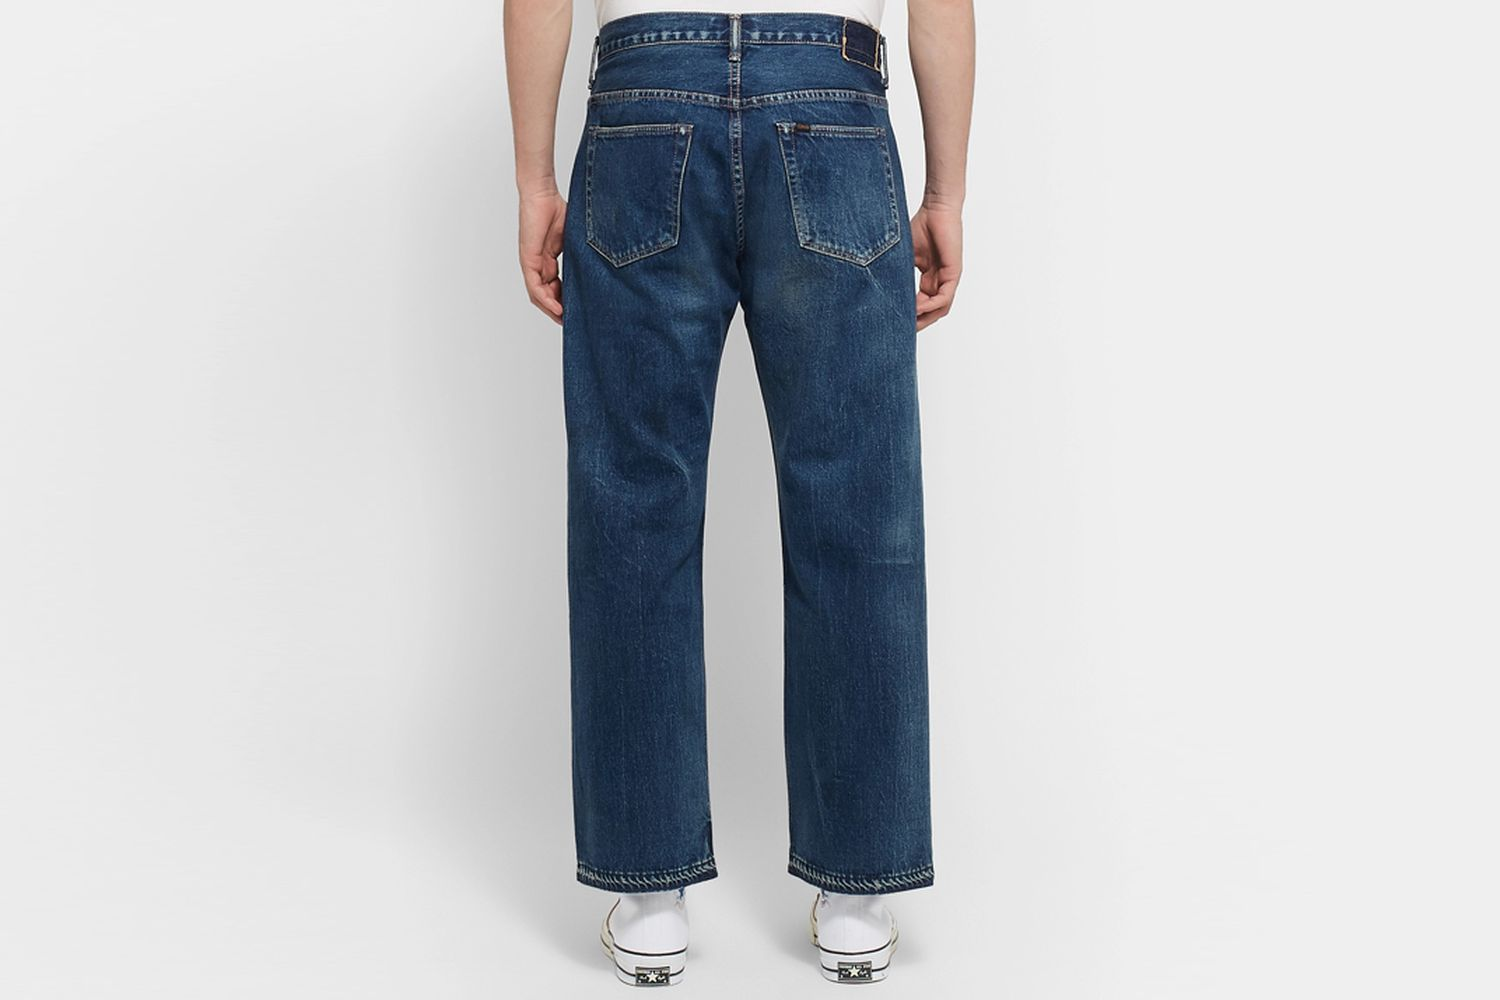 Cropped Washed Selvedge Denim Jeans